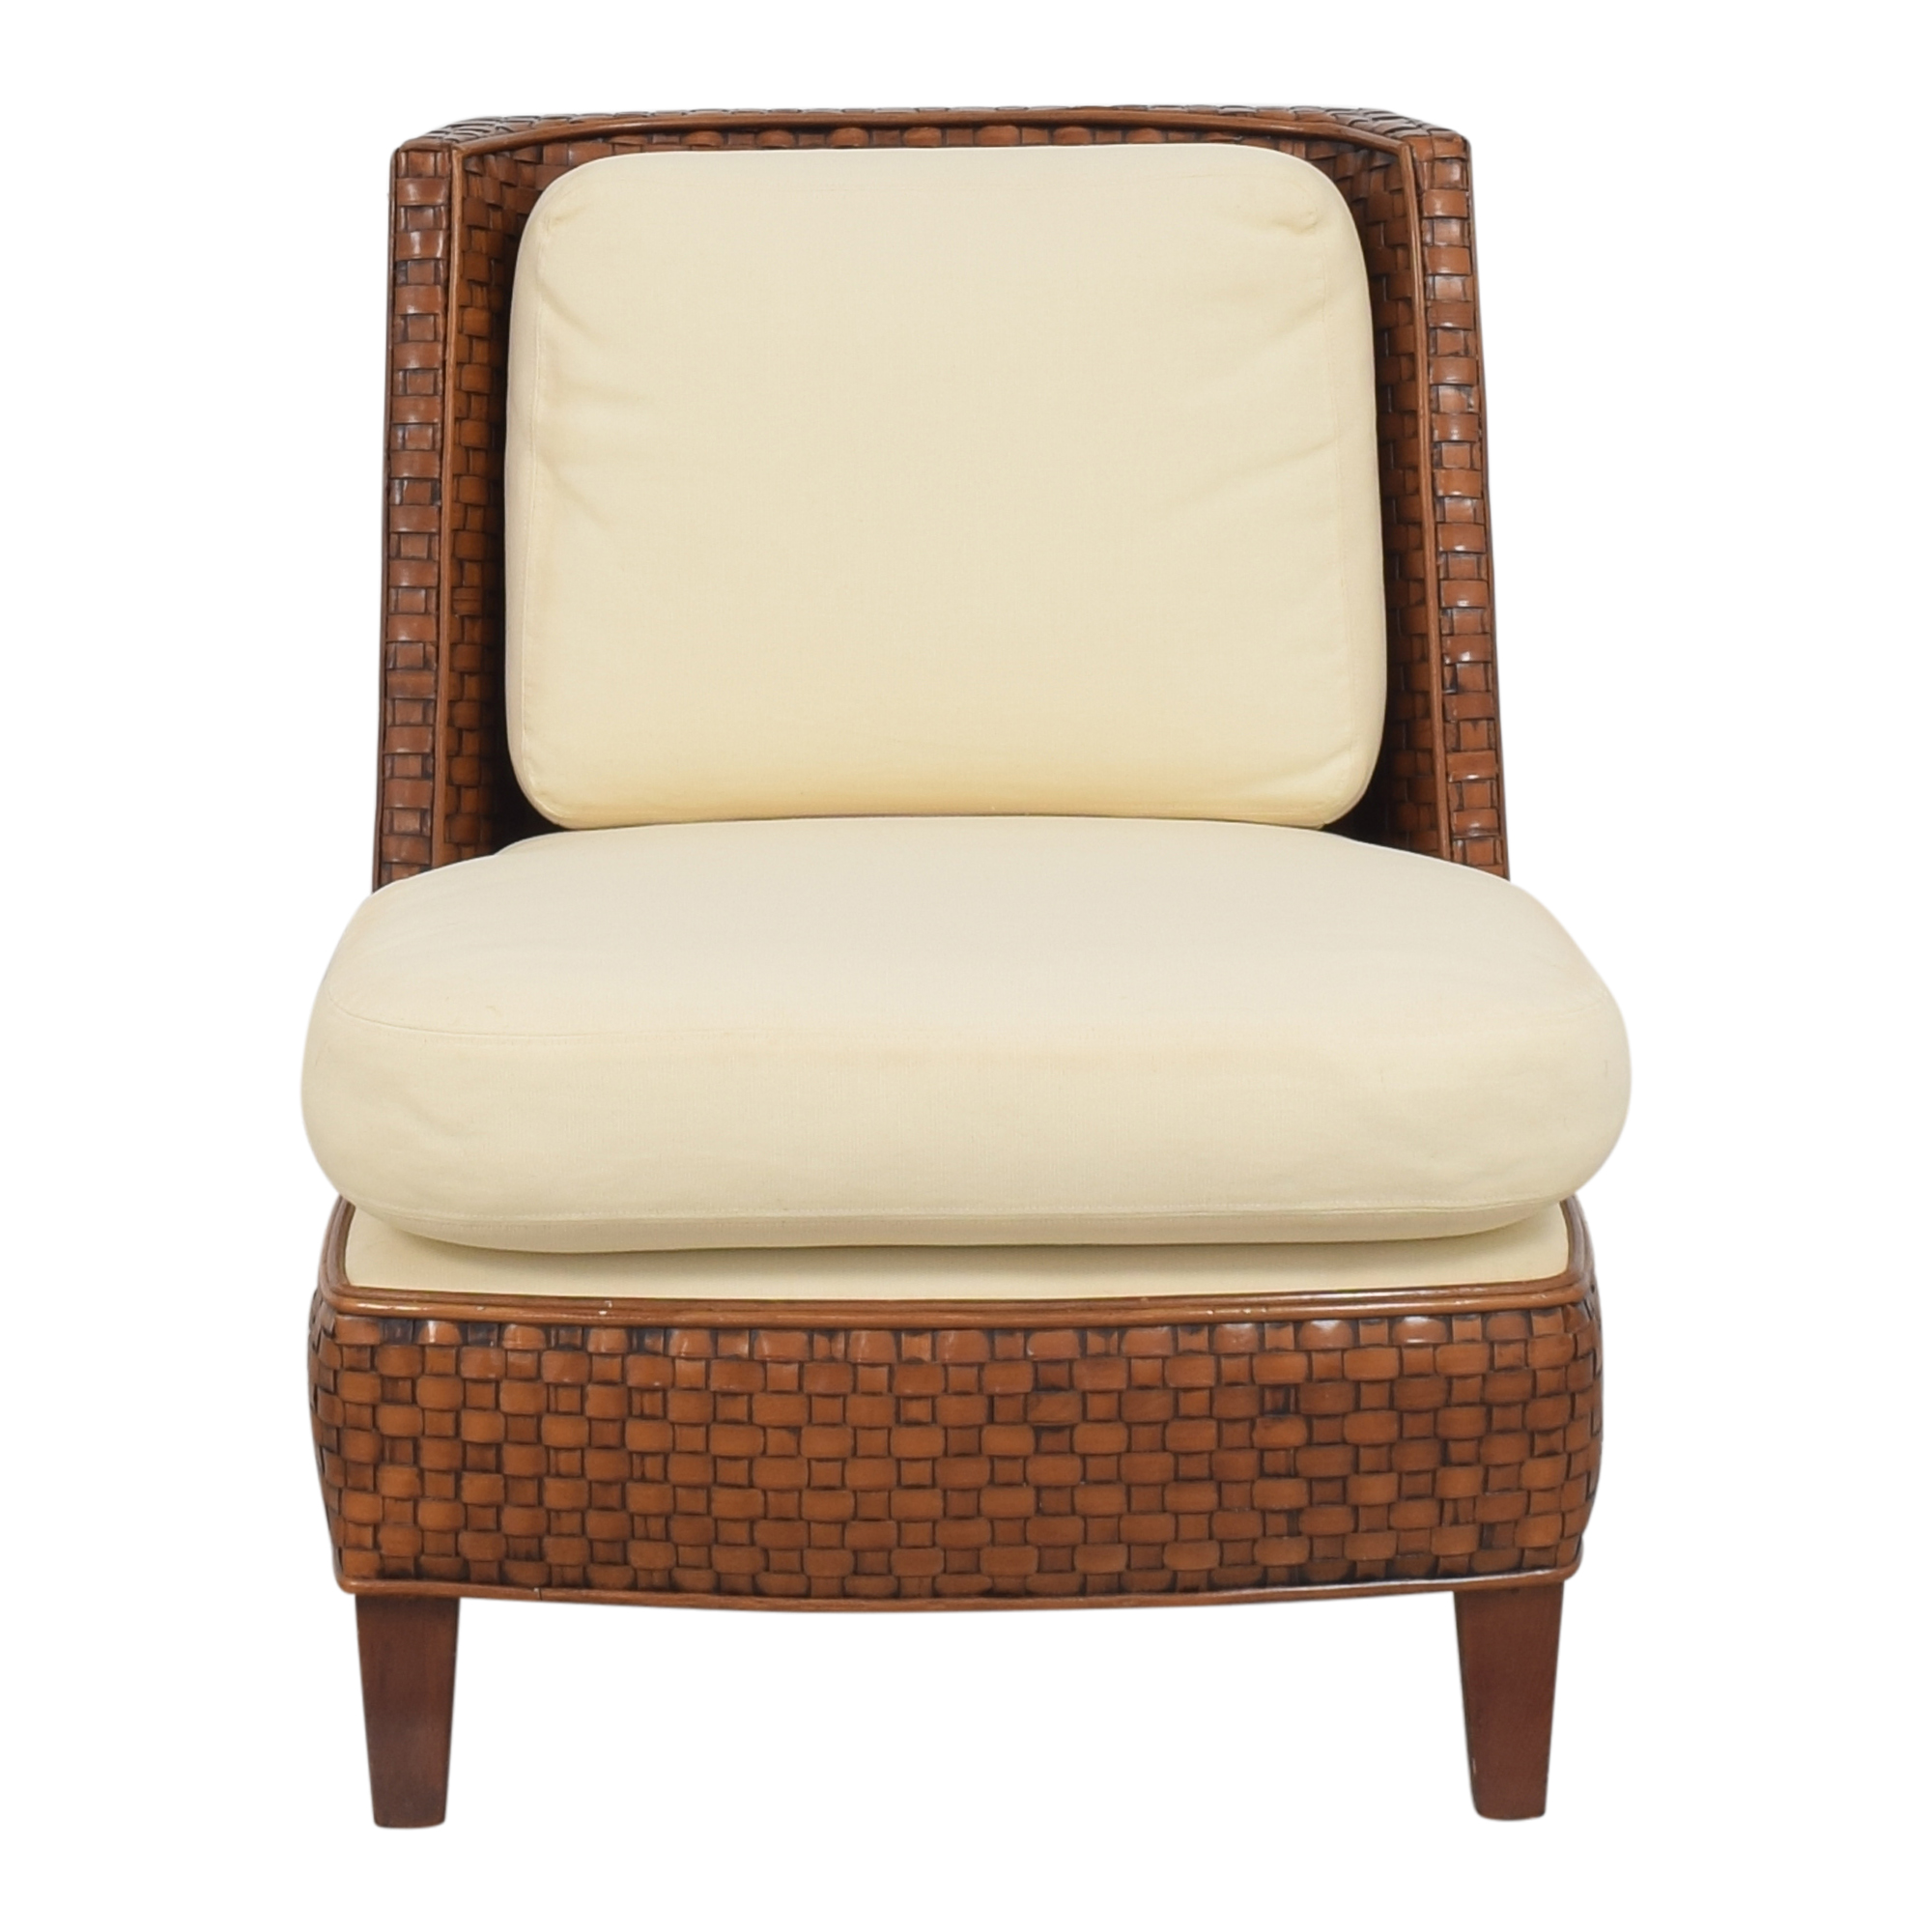 Woven Accent Chair brown and cream